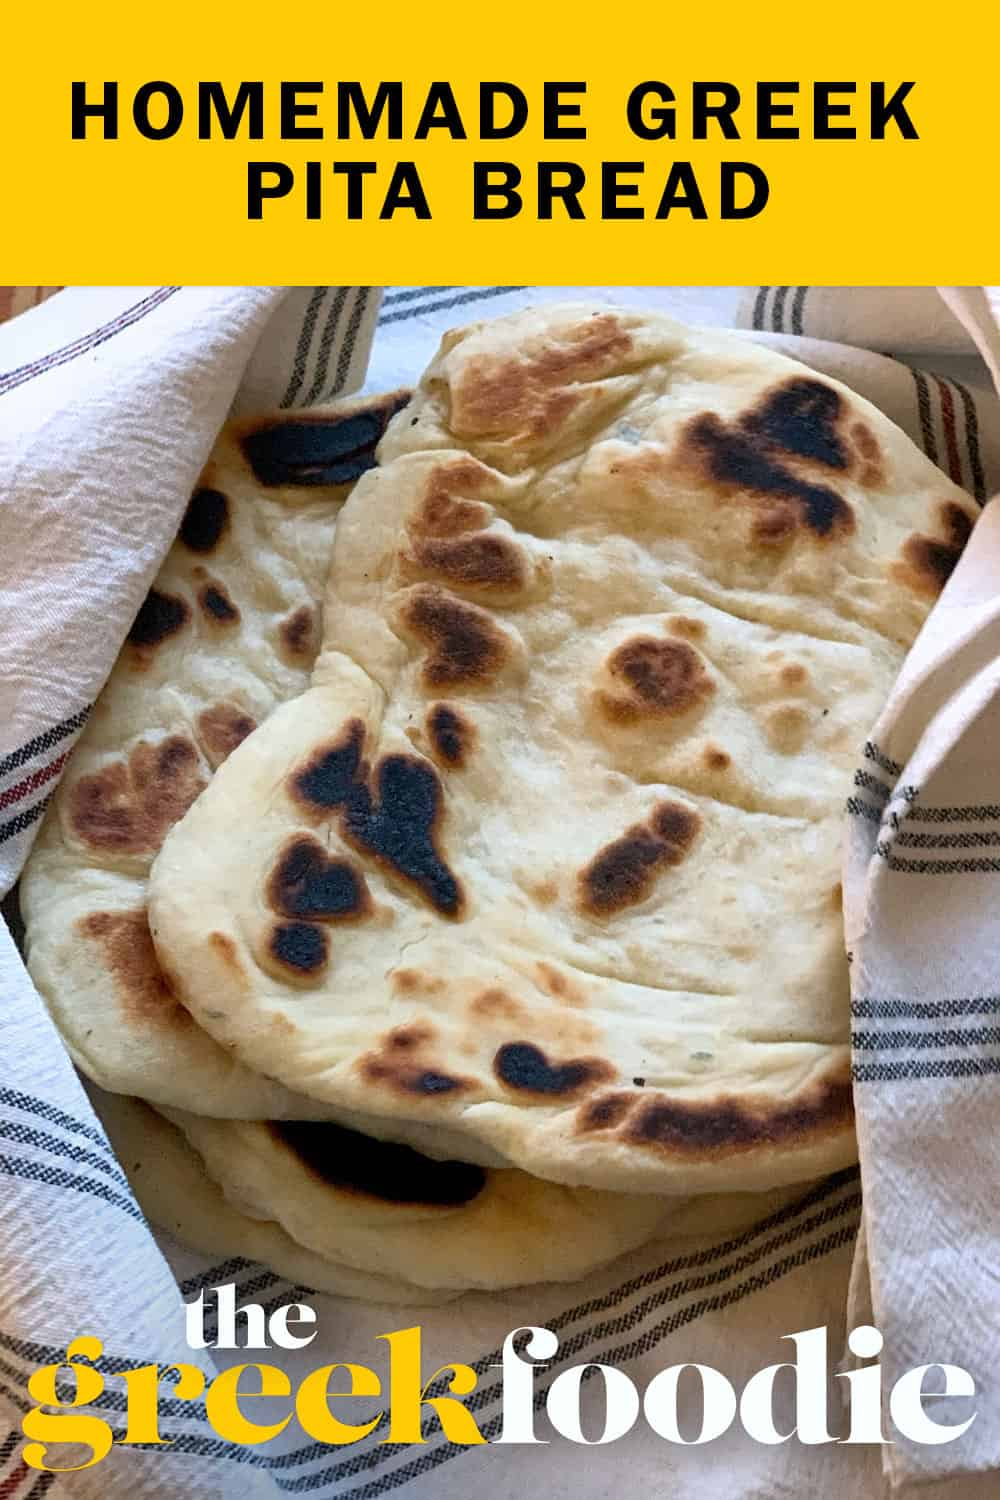 Greek pita bread is an essential ingredient for souvlaki. I love making my own pitas. They come out delicious and they truly are the real thing.